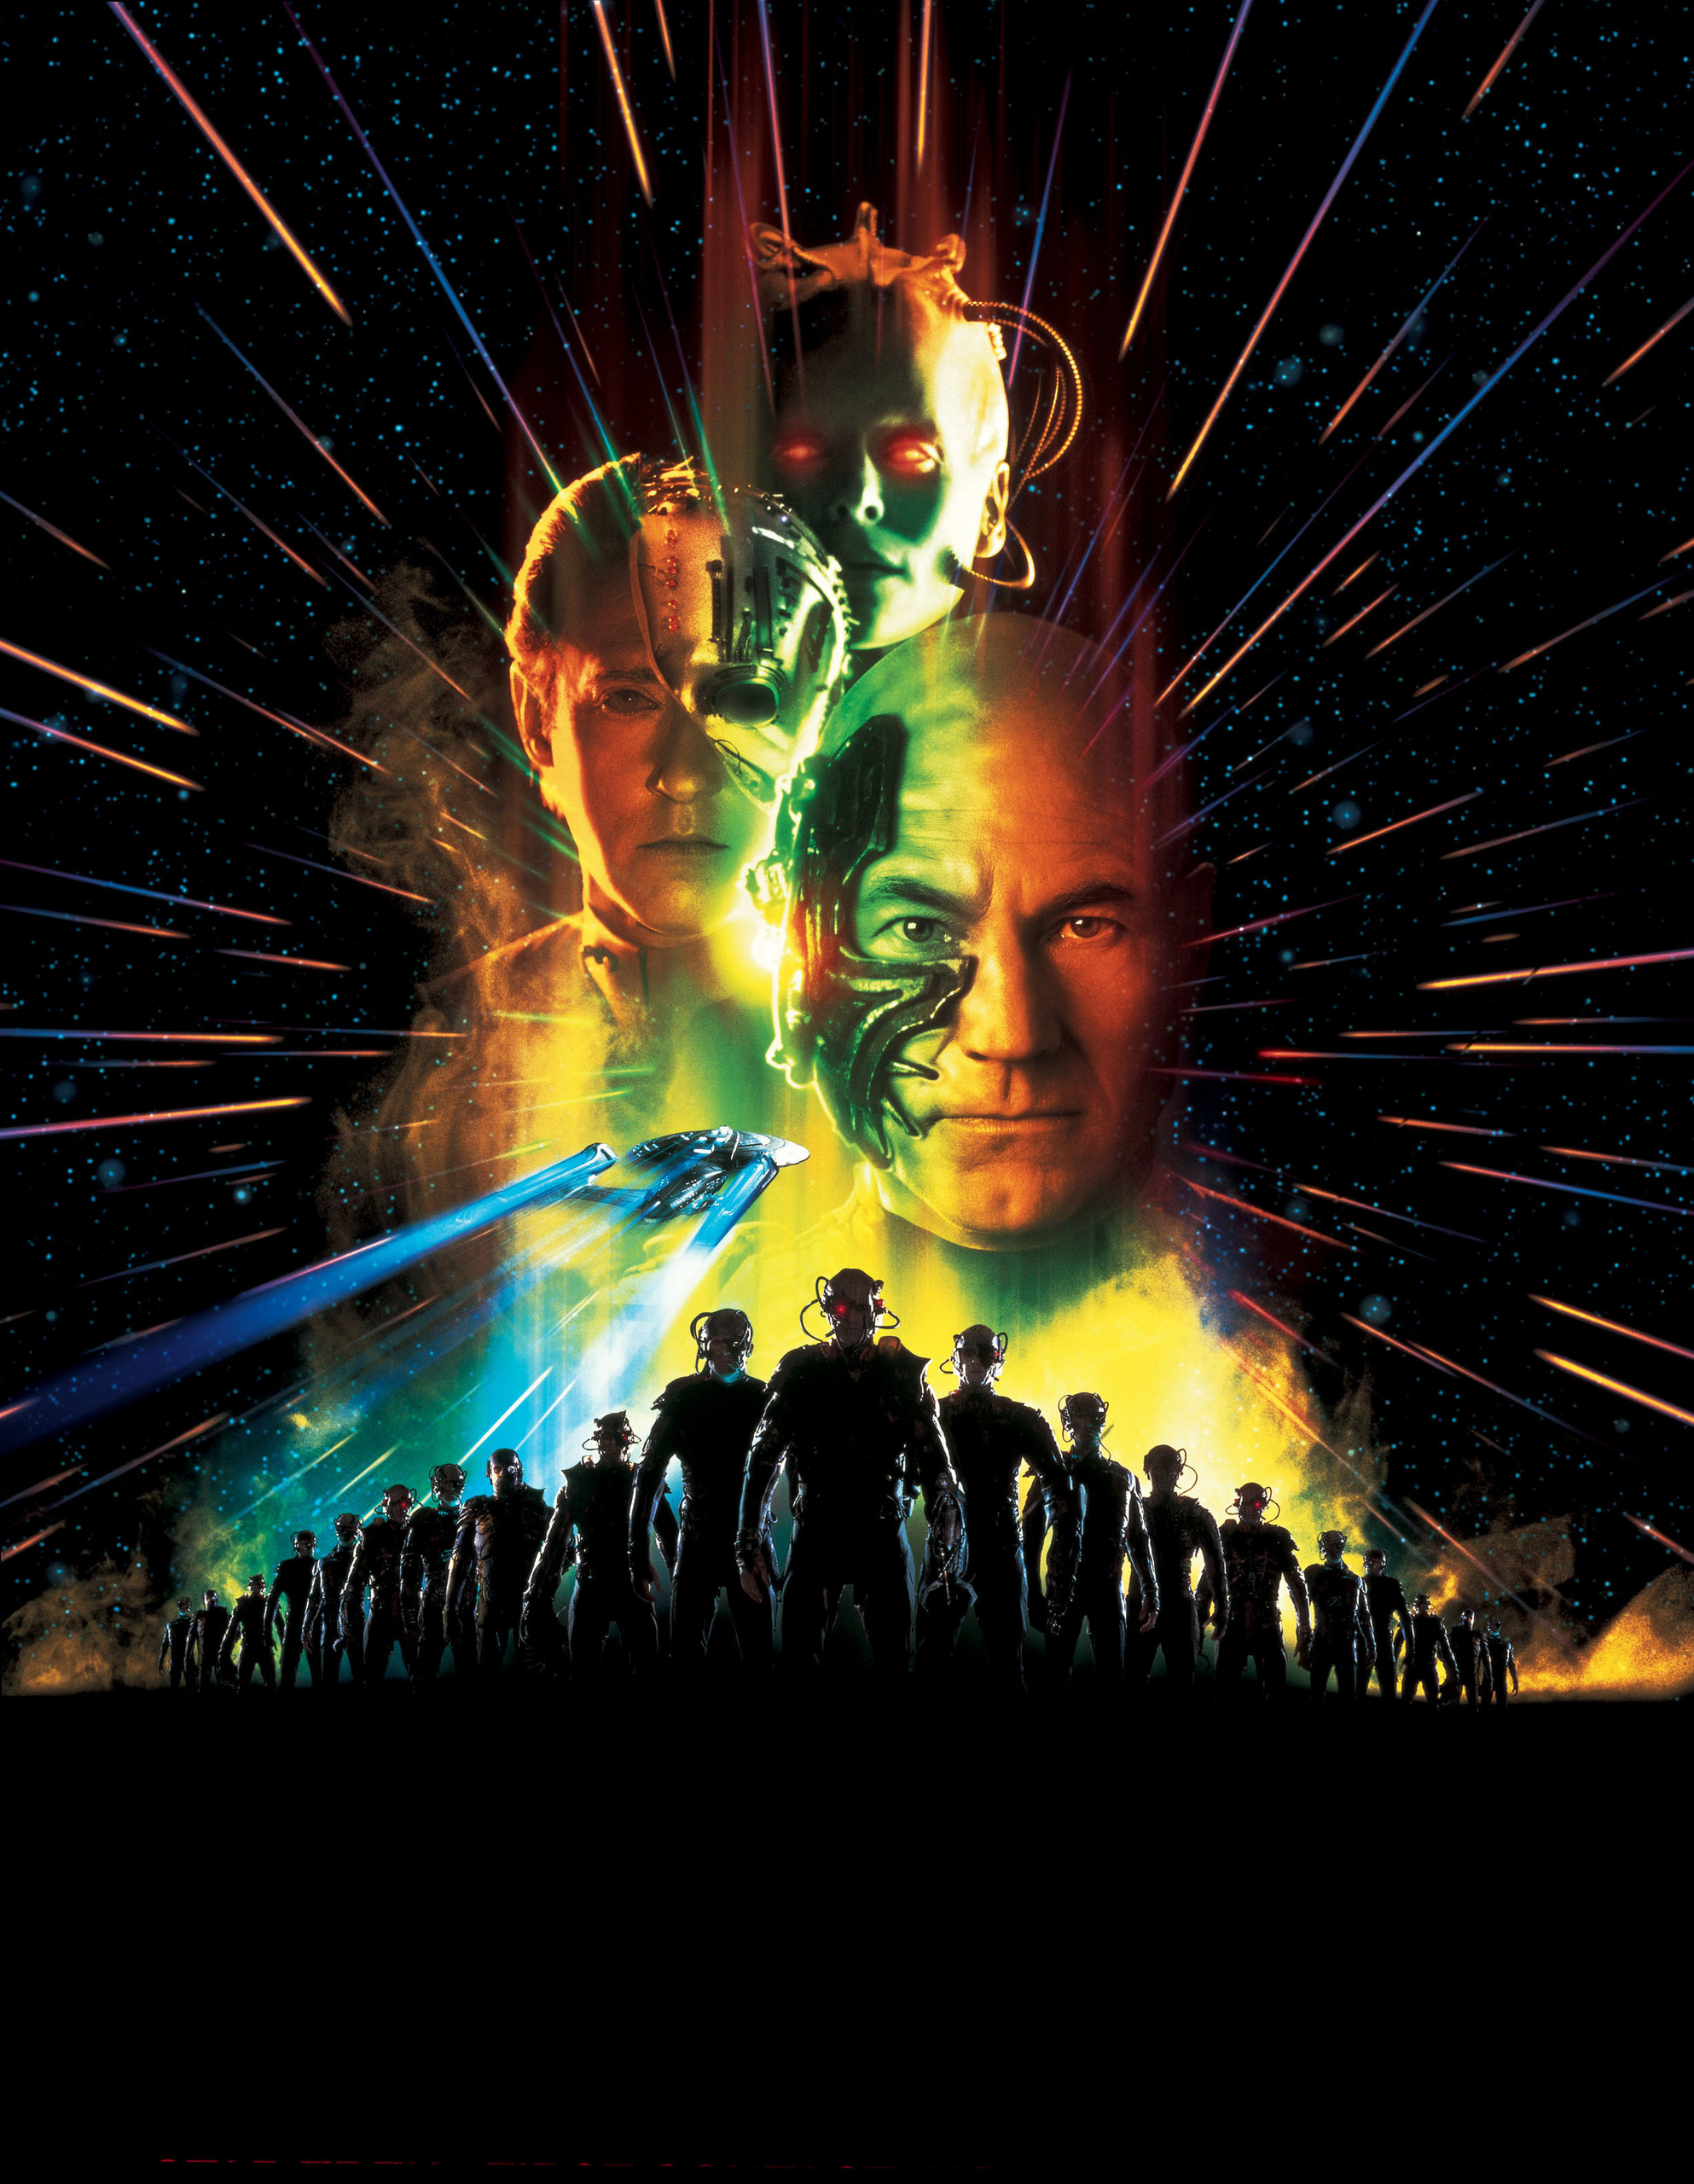 Star Trek Movies Images VIII First Contact Poster HD Wallpaper And Background Photos